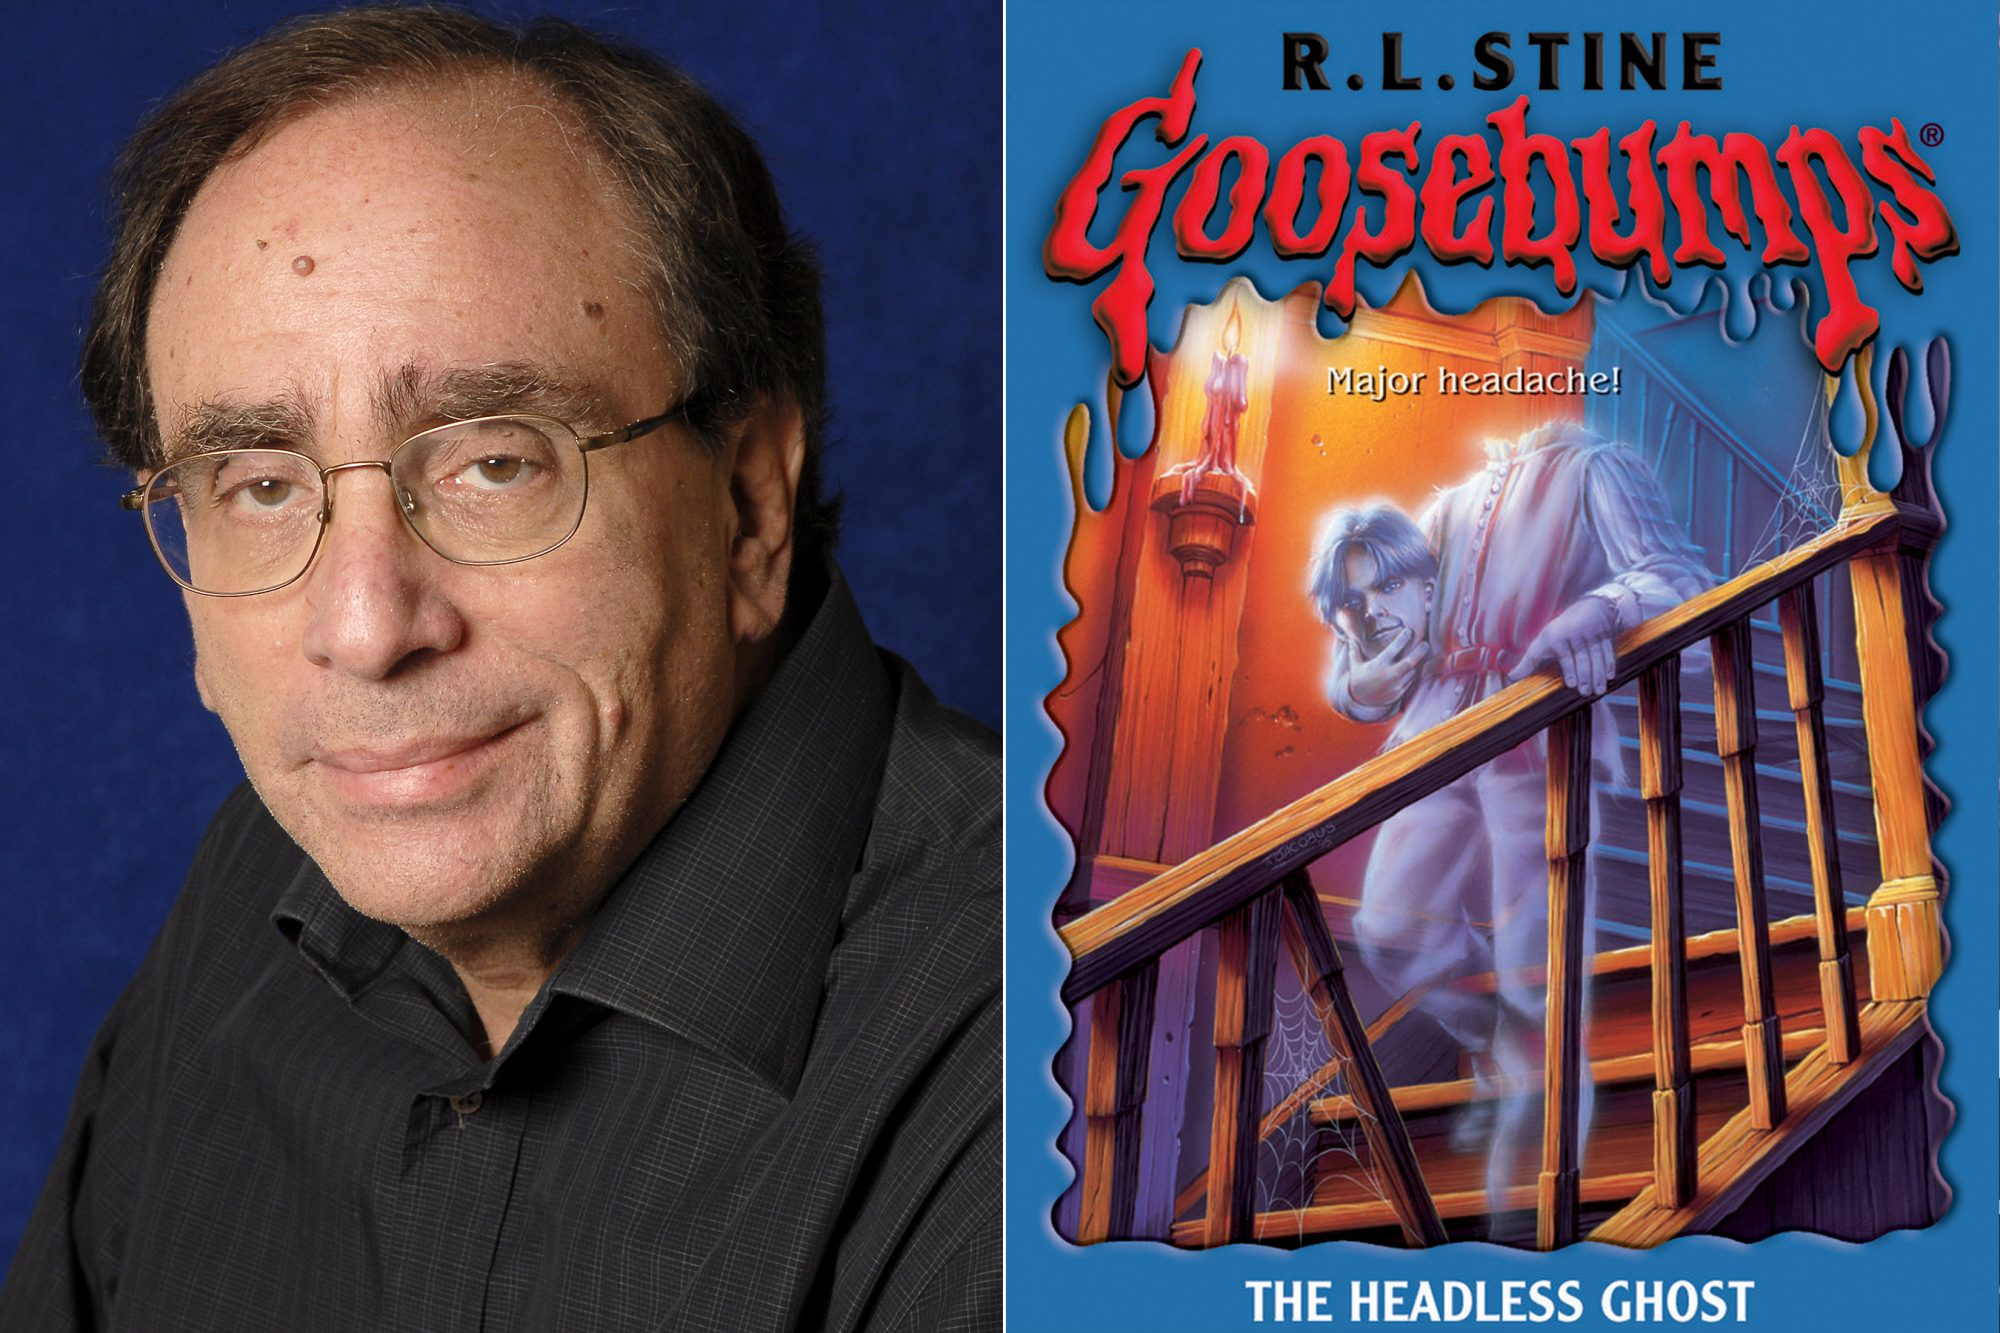 R.L. Stine/ Goosebumps: The Headless Ghost